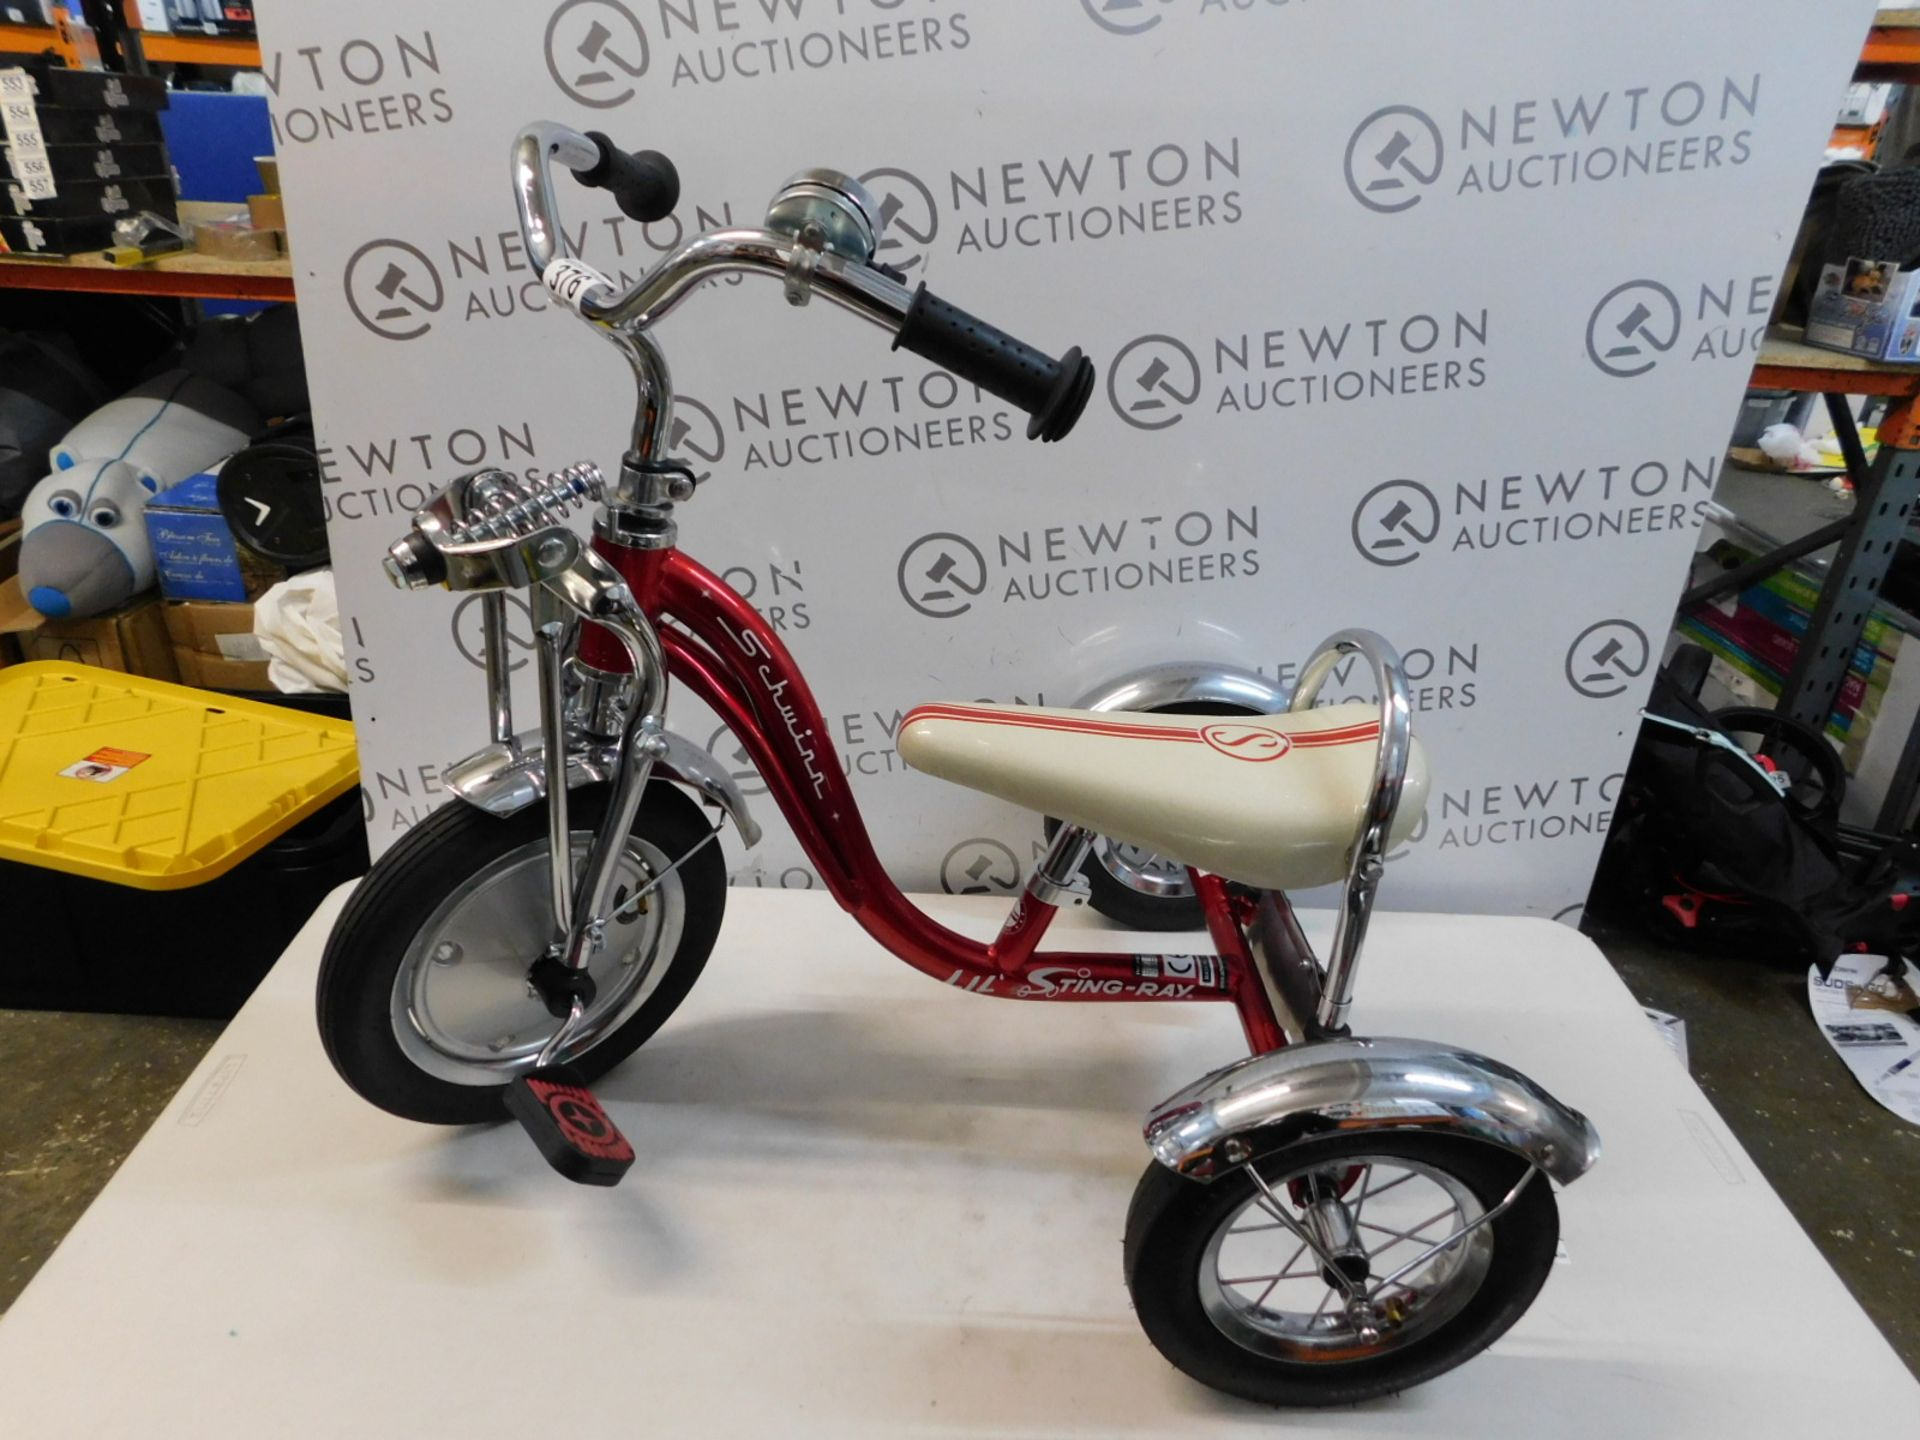 1 SCHWINN LIL STING-RAY SUPER DELUXE TRICYCLE RRP £129.99